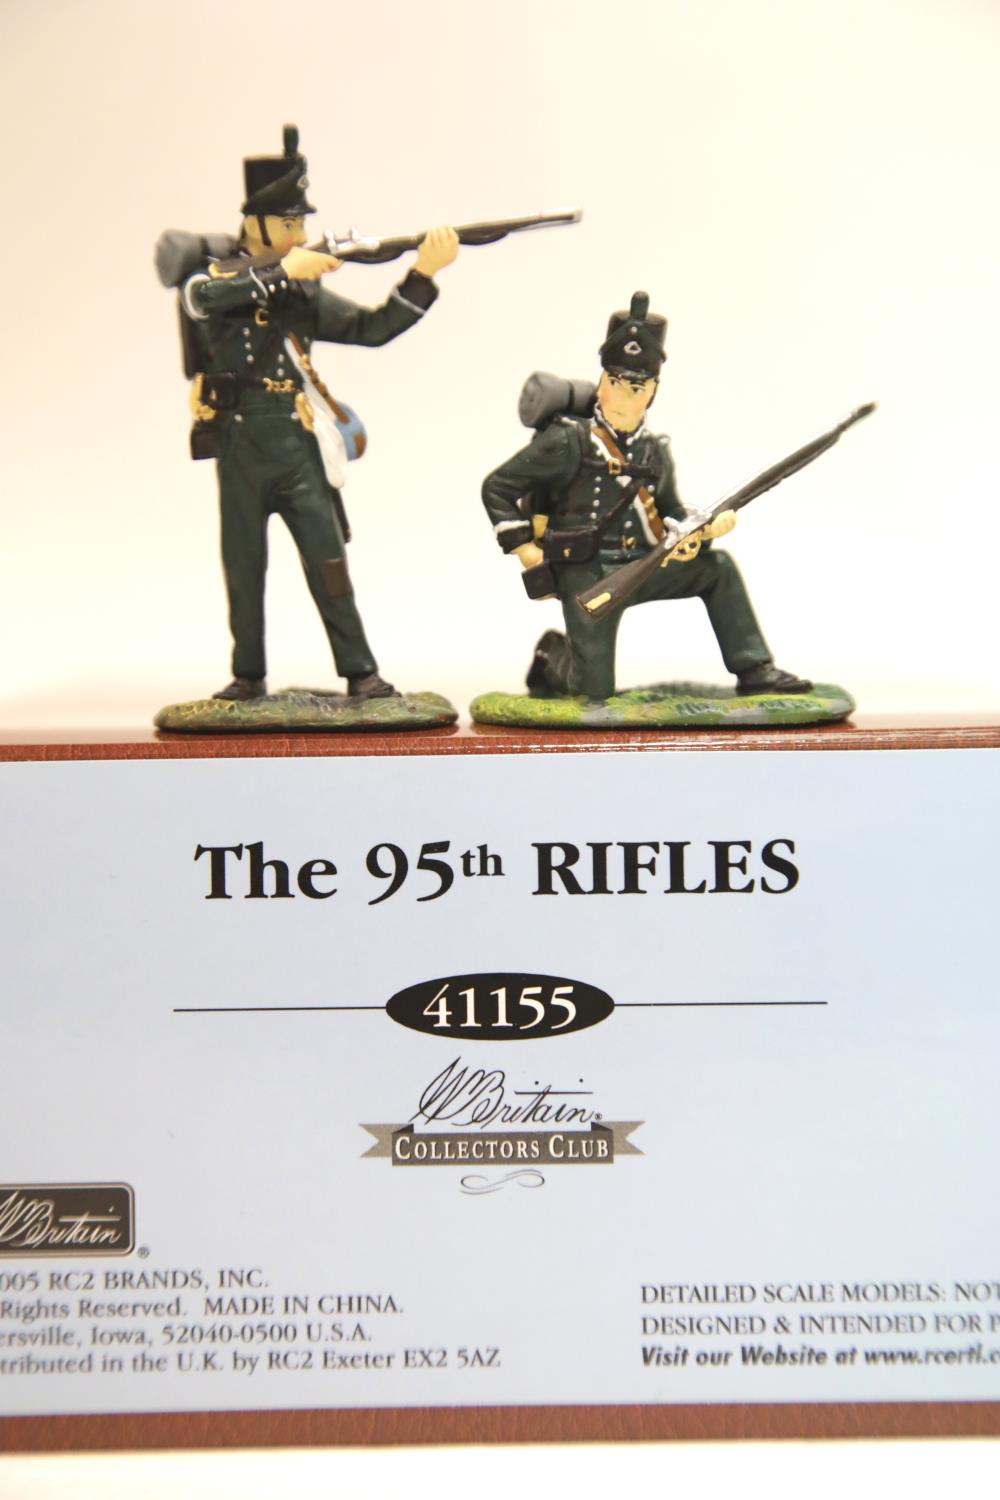 Lot 679 - Britains 41155 95th Rifles set. P&P Group 1 (£14+VAT for the first lot and £1+VAT for